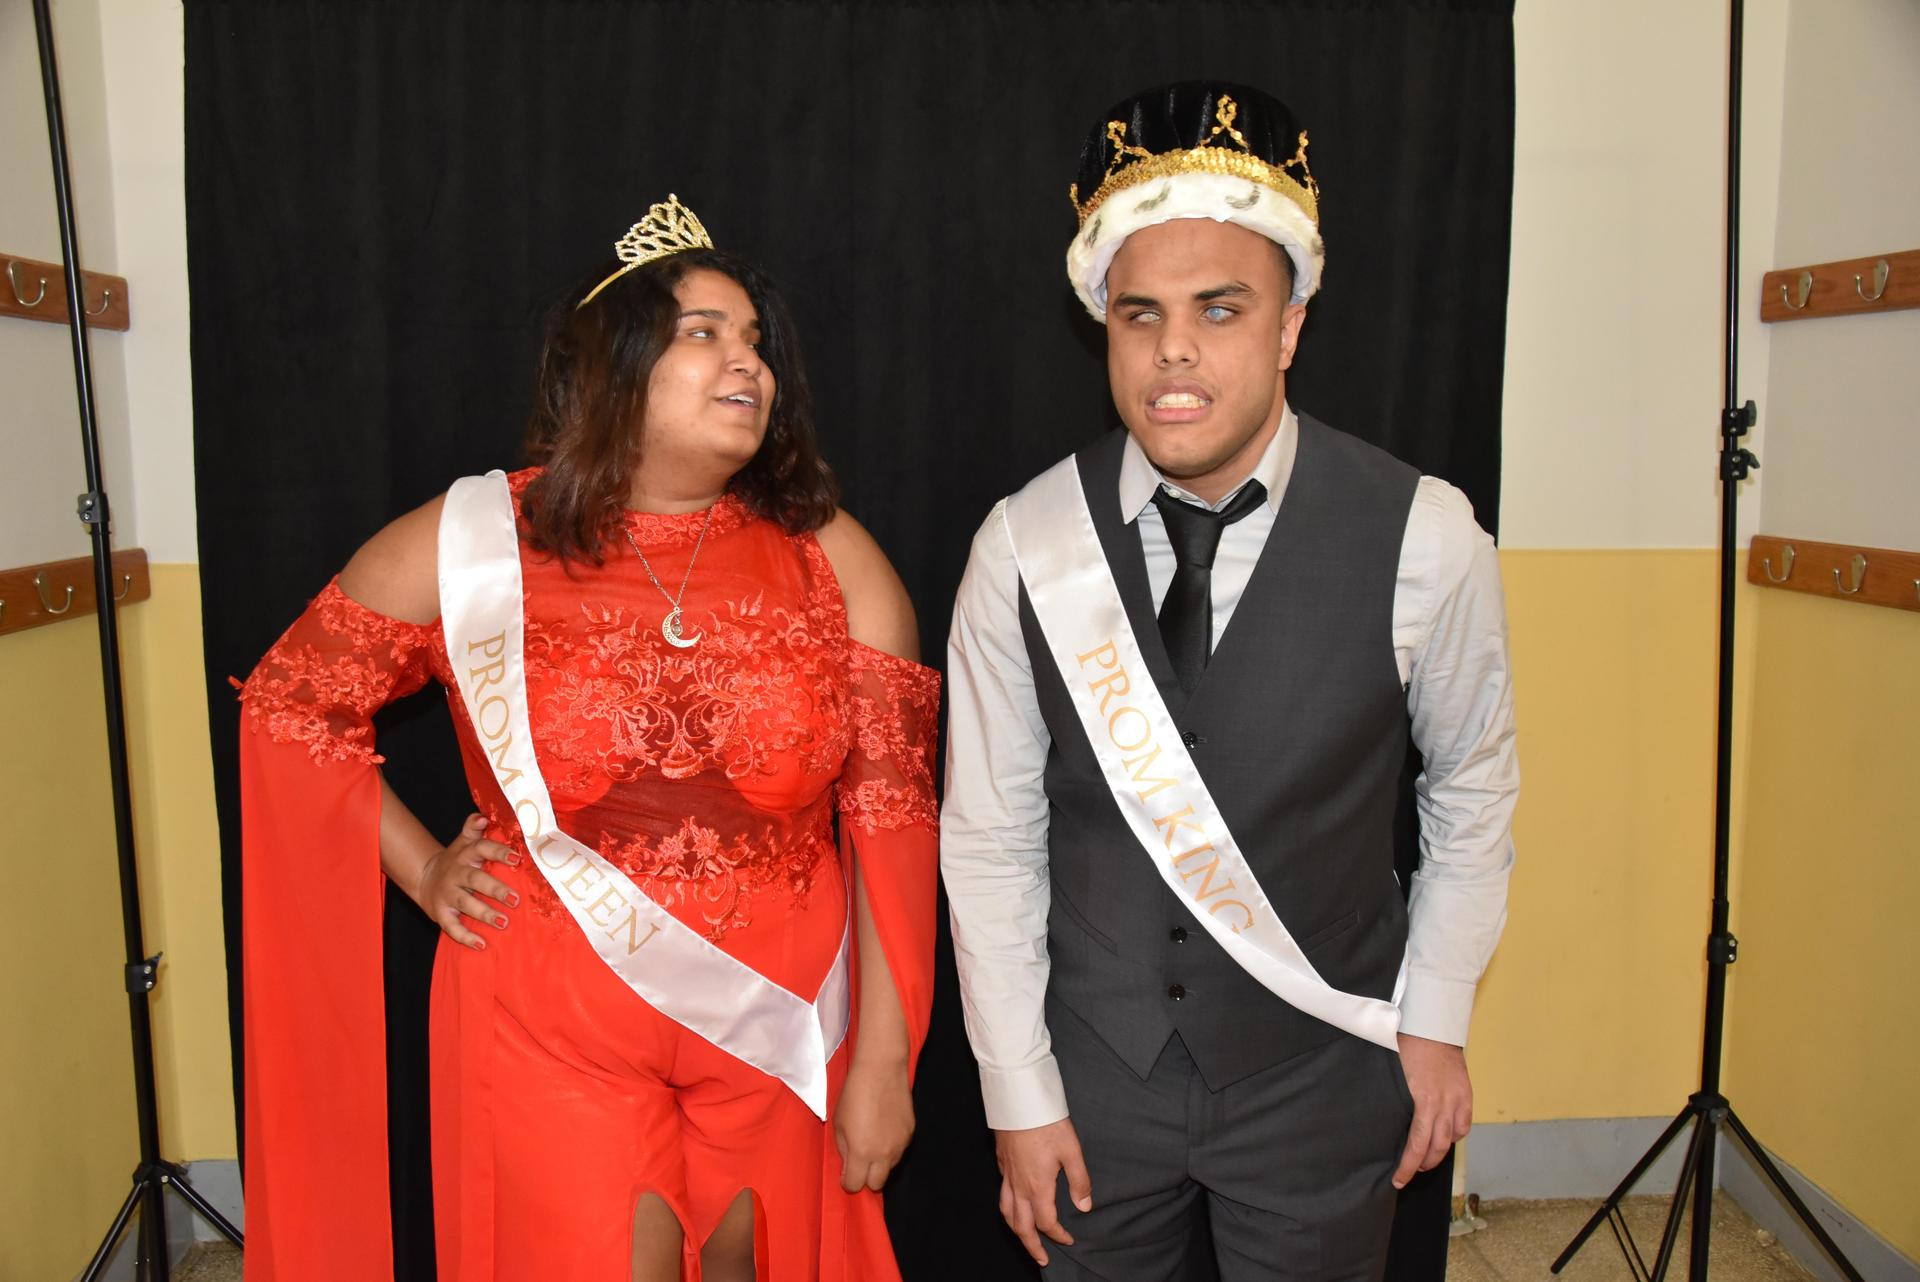 The prom King and Queen pose for a photo wearing crowns and sashes